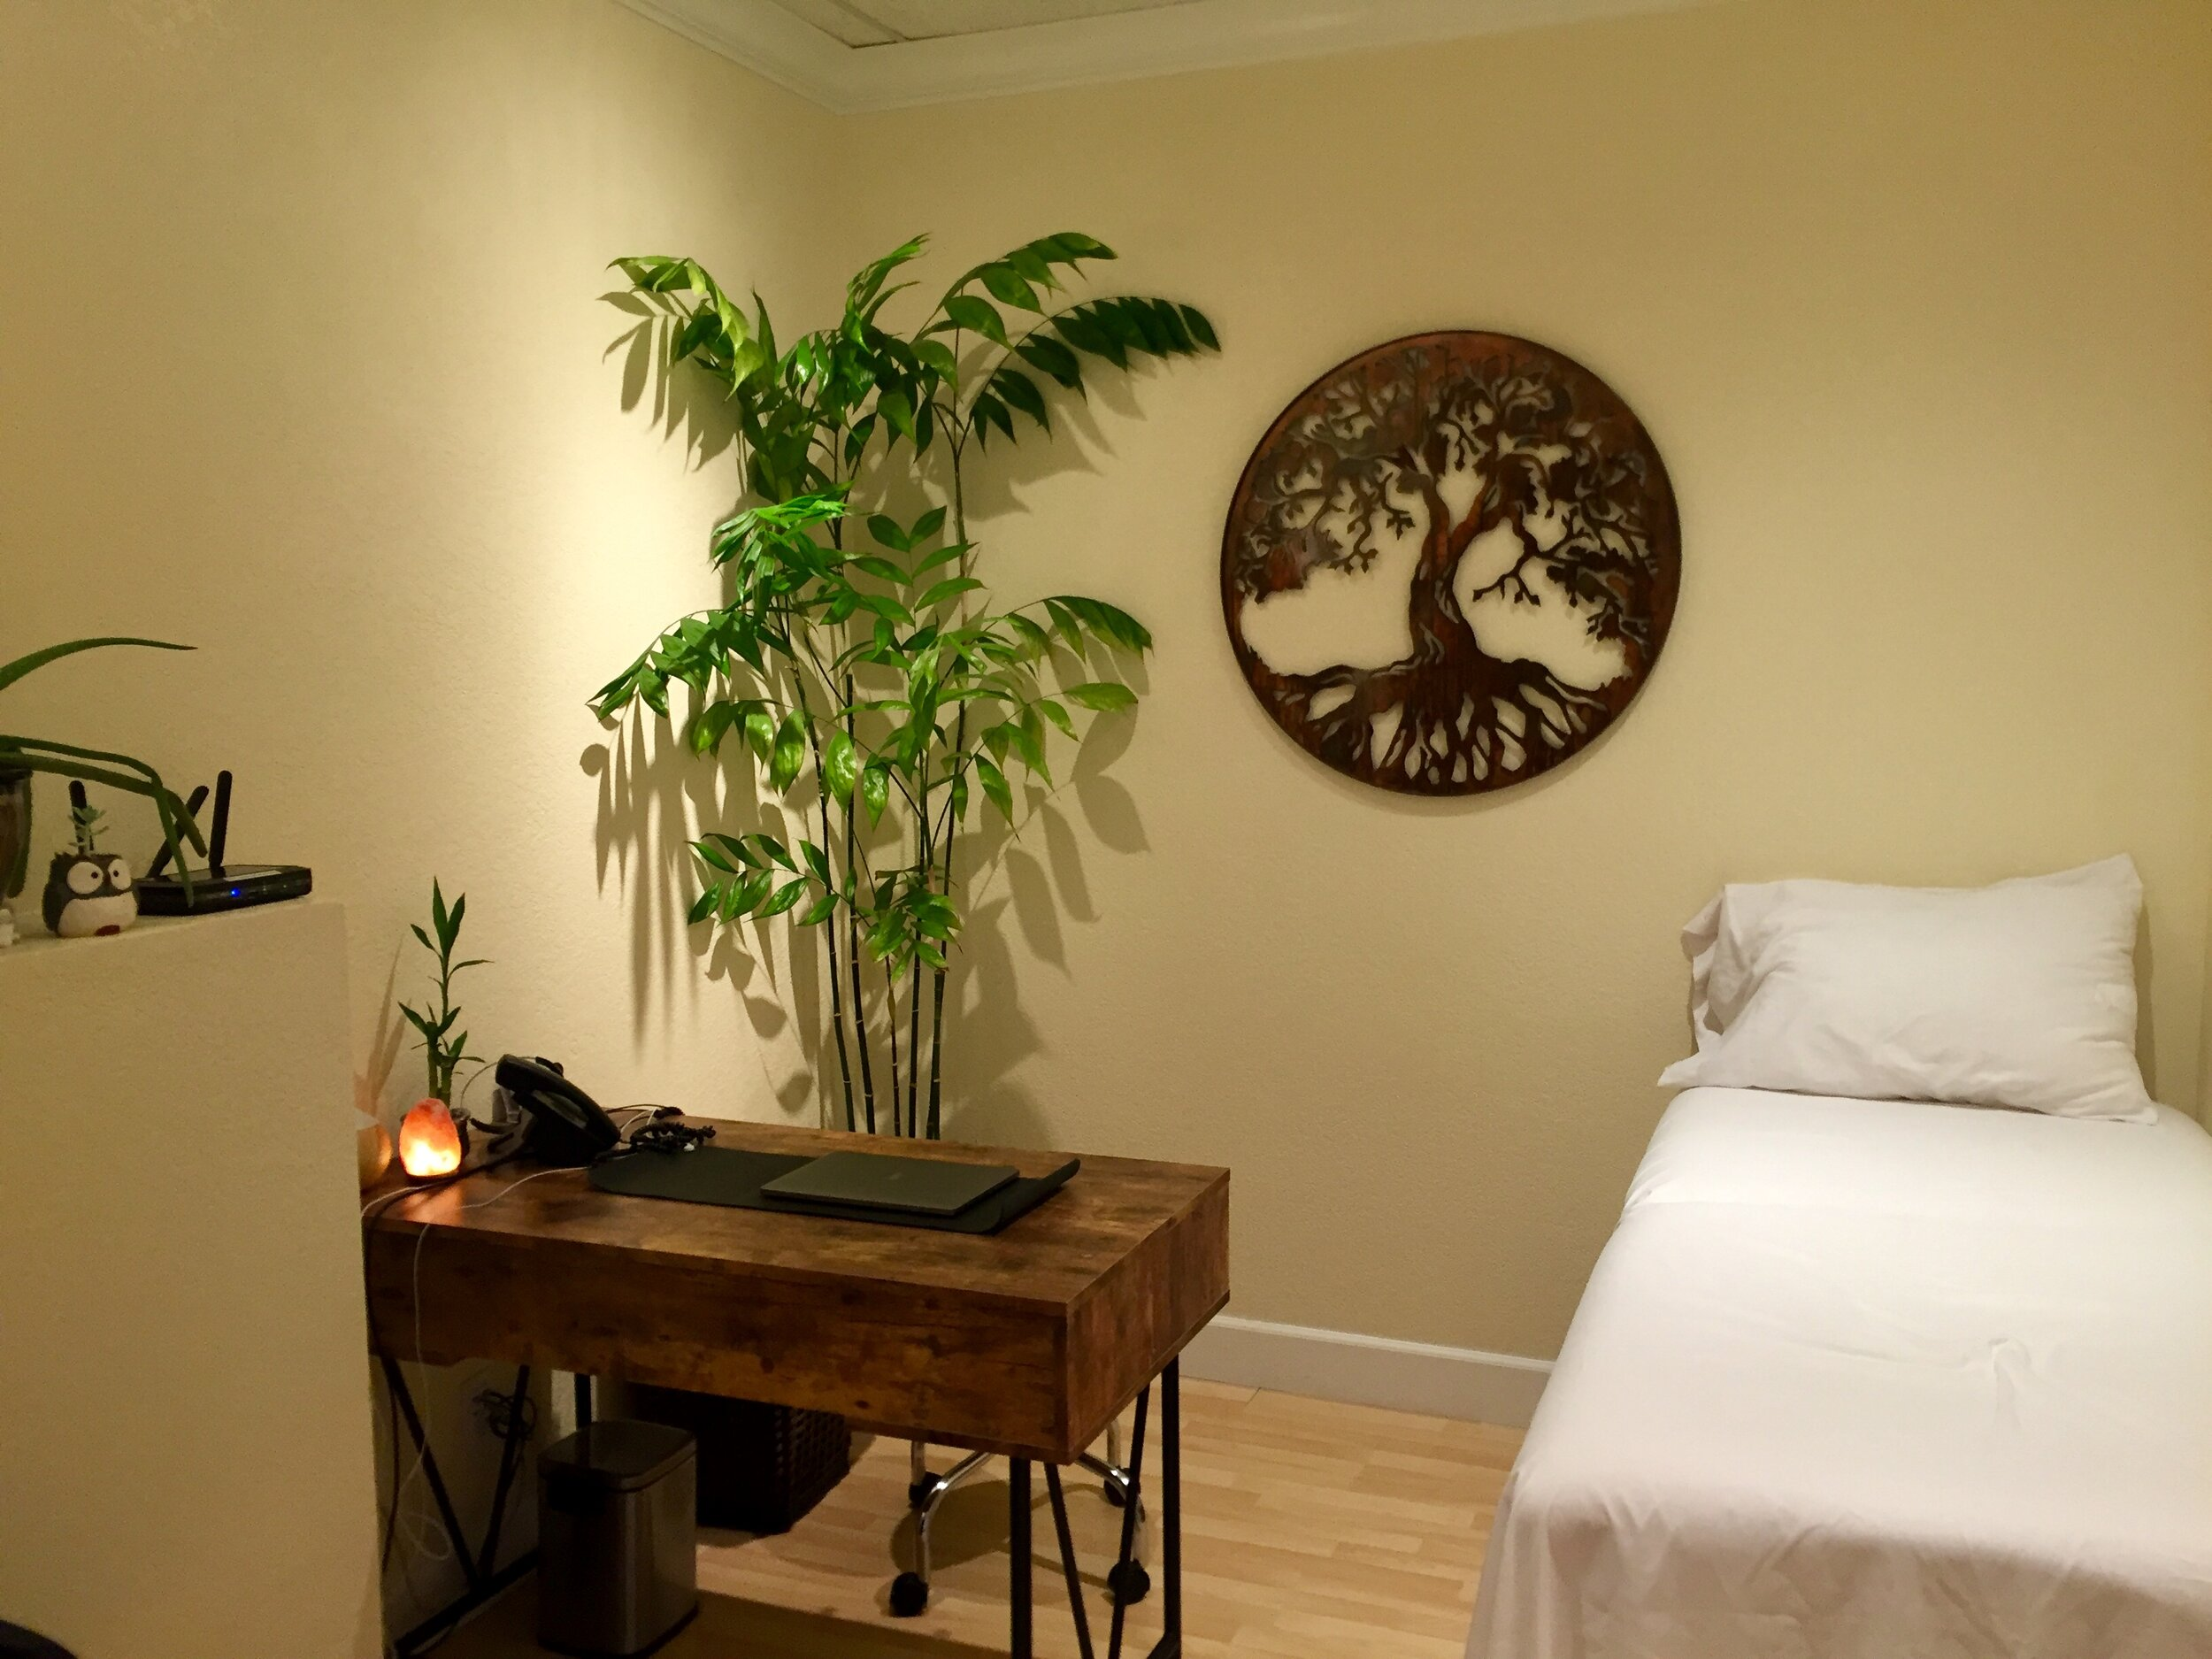 Our Practice - Wild Oak Medicine is located within the Airport Health Club in Santa Rosa, California.